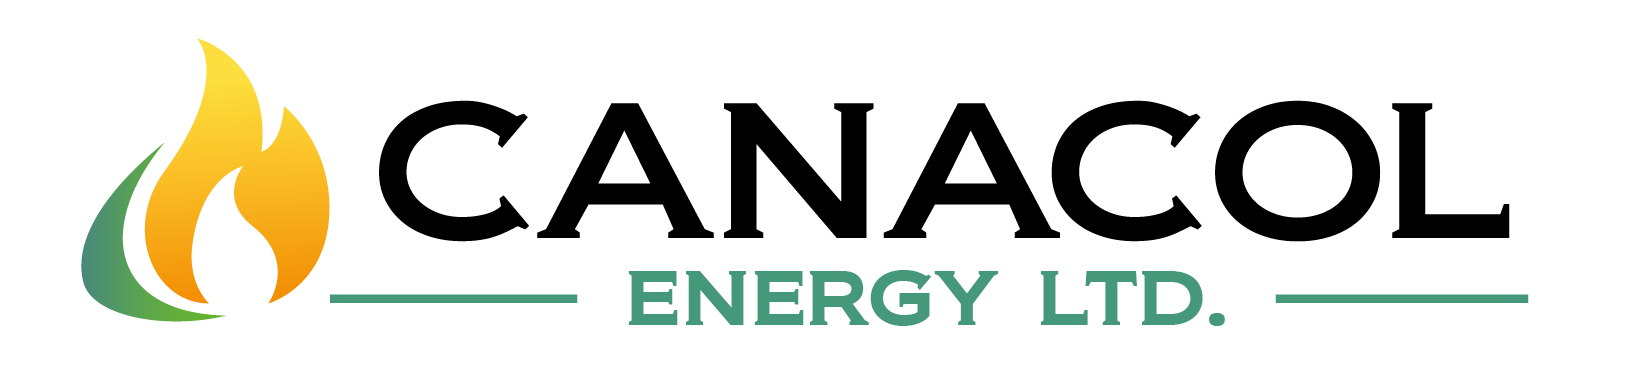 Canacol Energy Ltd.